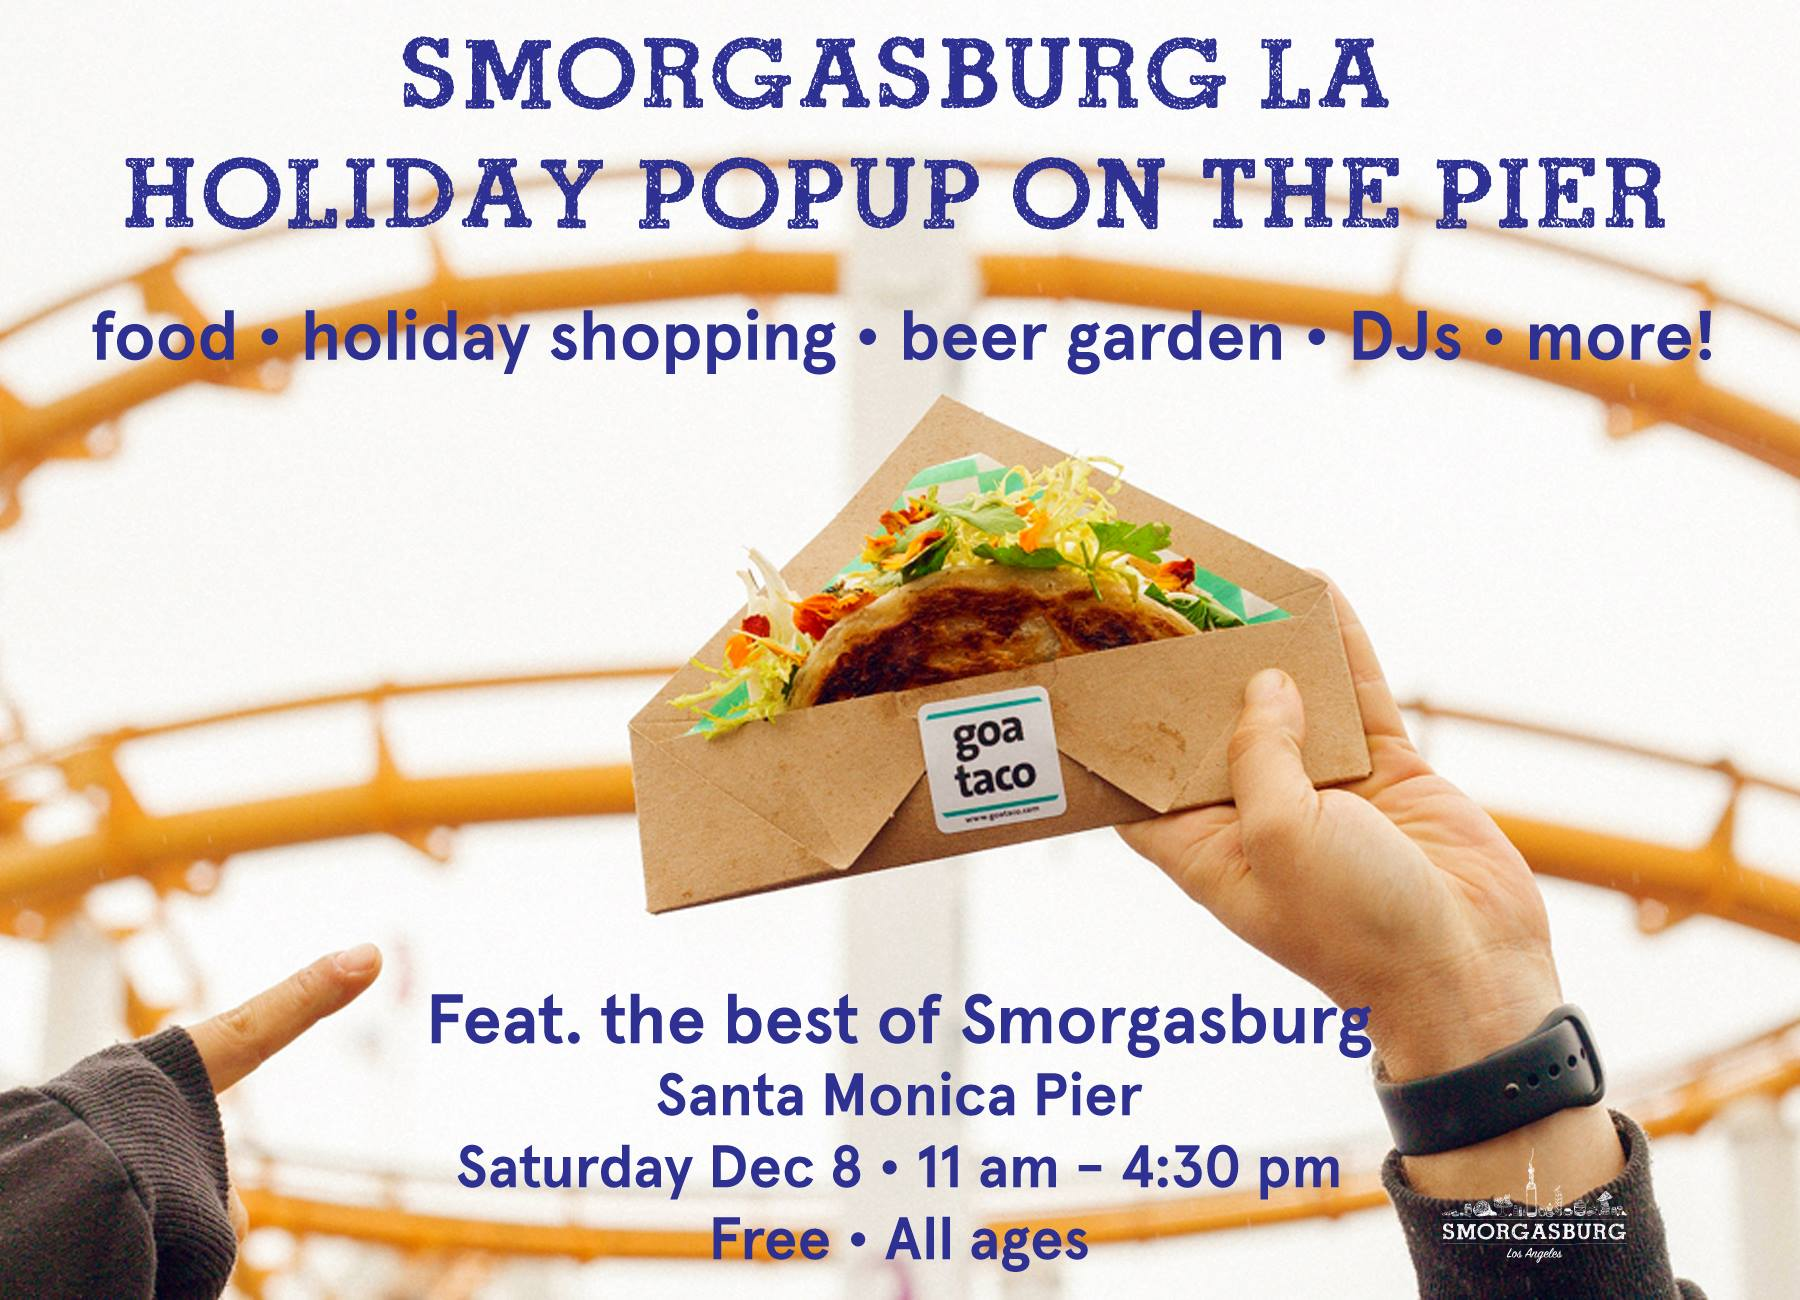 Smorgasburg LA Holiday Pop-Up on the Pier